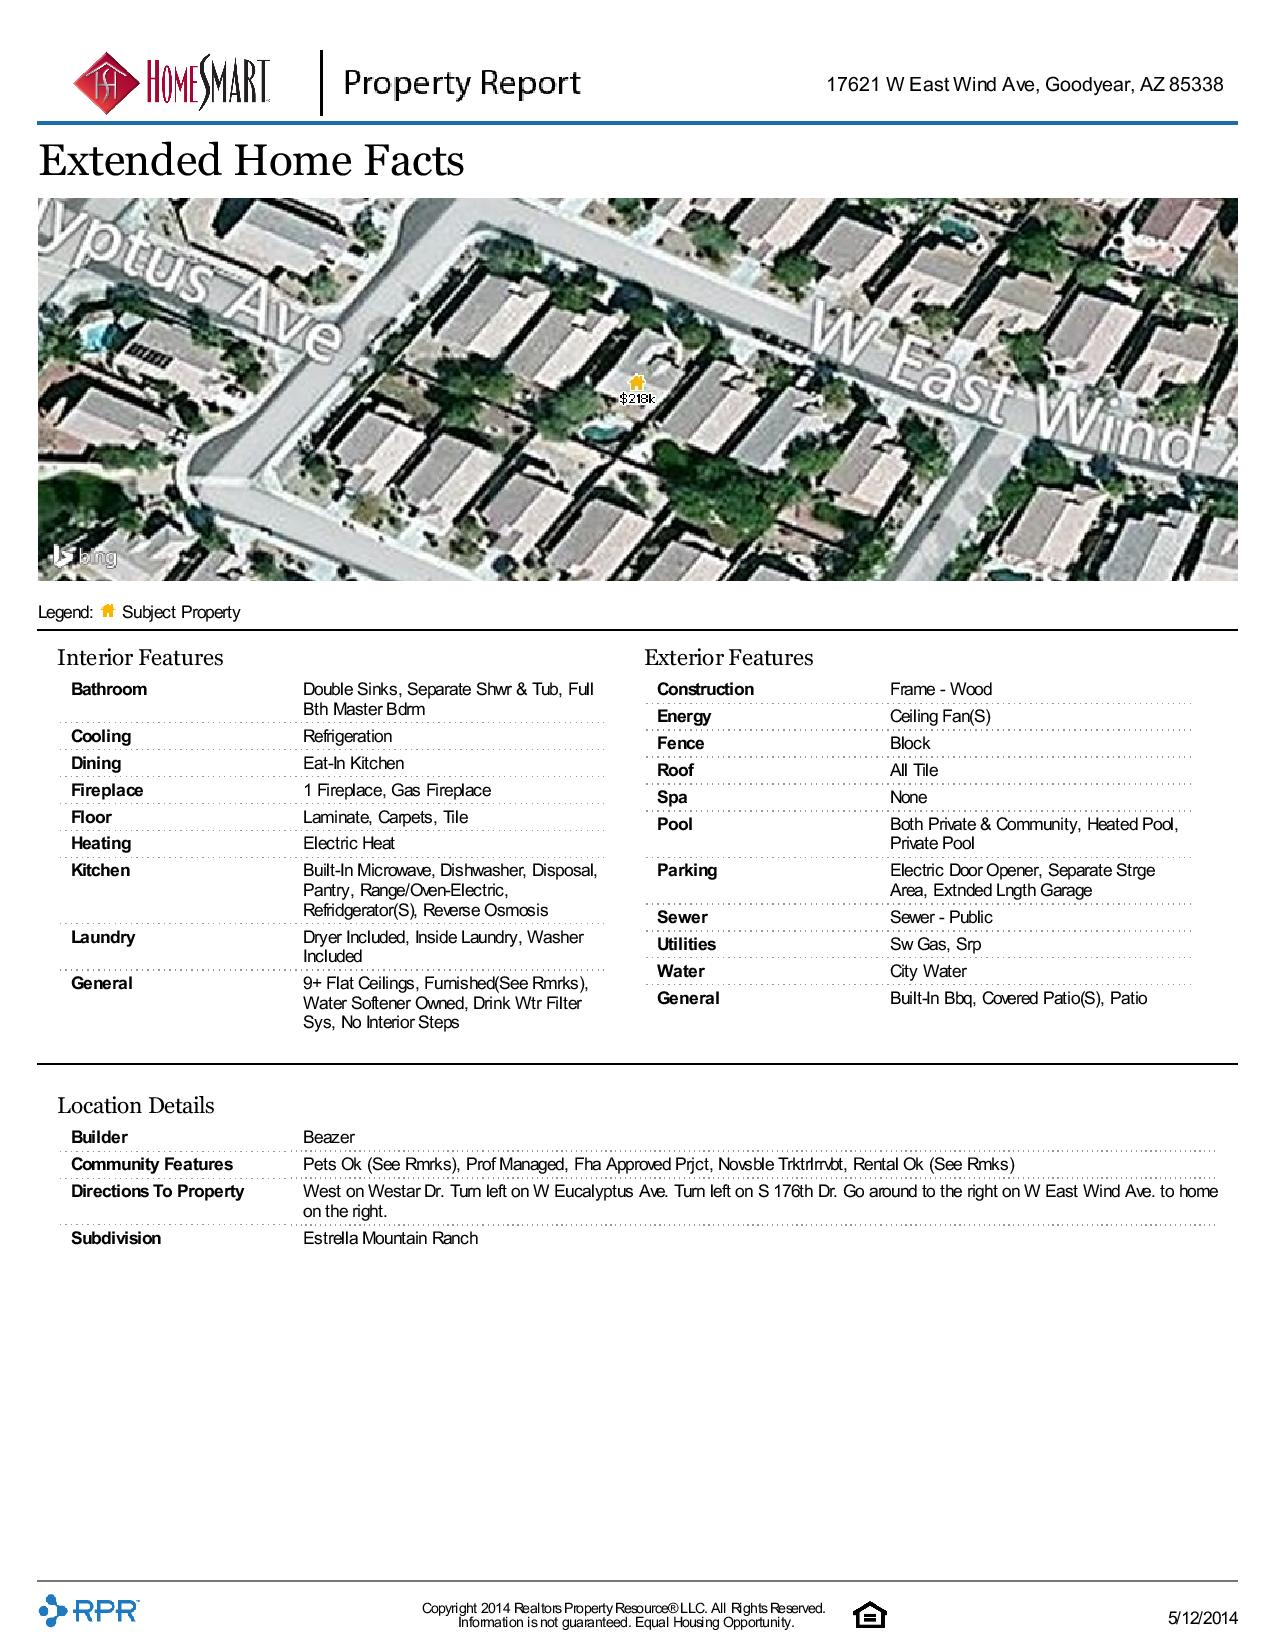 17621-W-East-Wind-Ave-Goodyear-AZ-85338-page-004